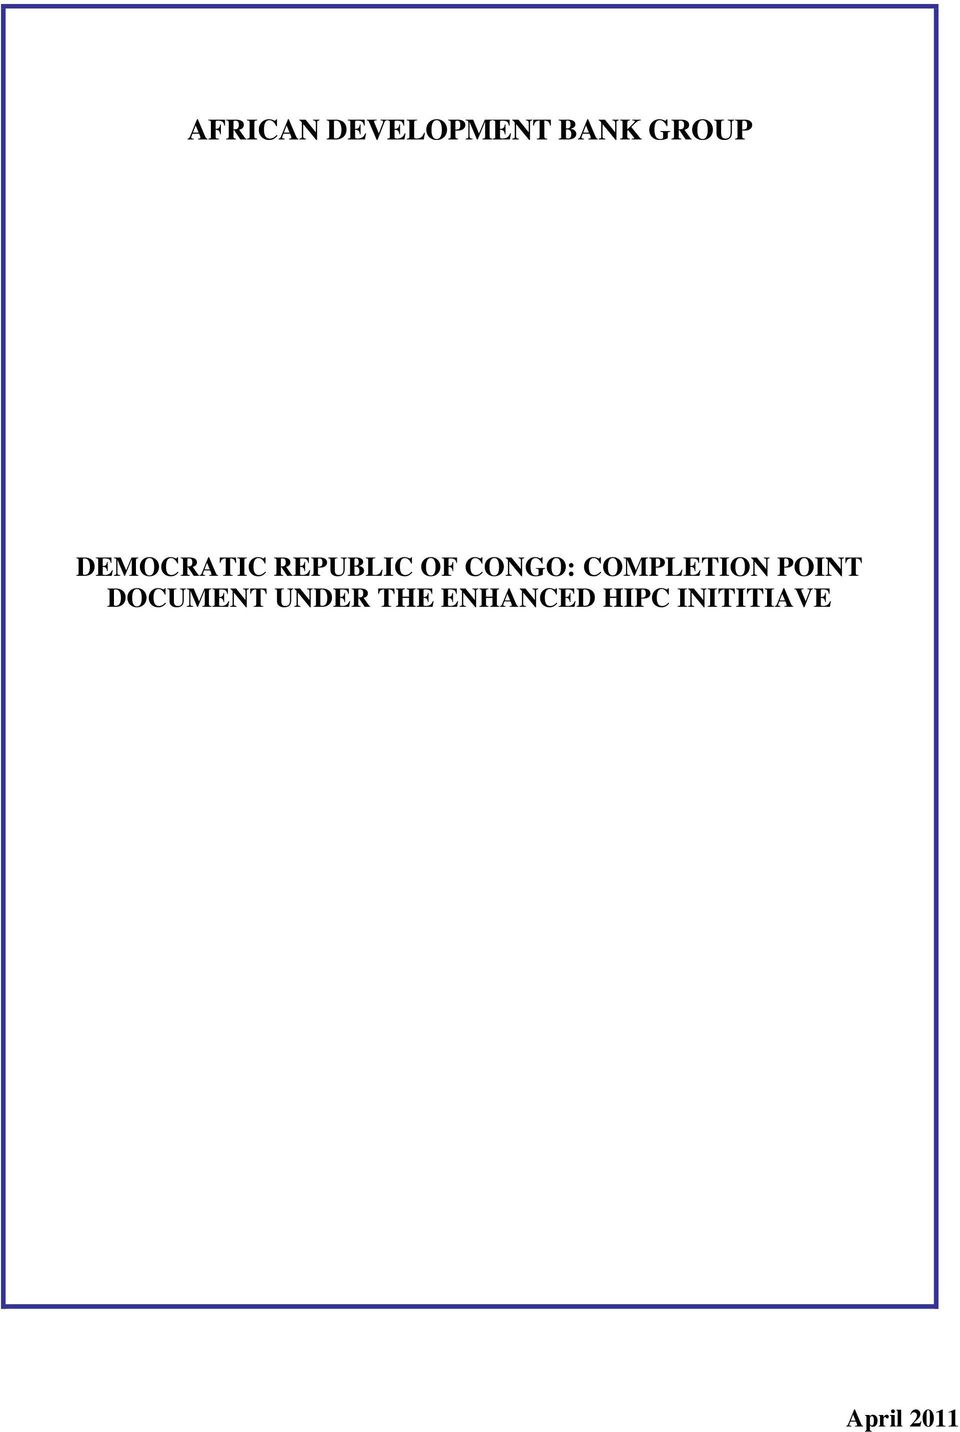 COMPLETION POINT DOCUMENT UNDER